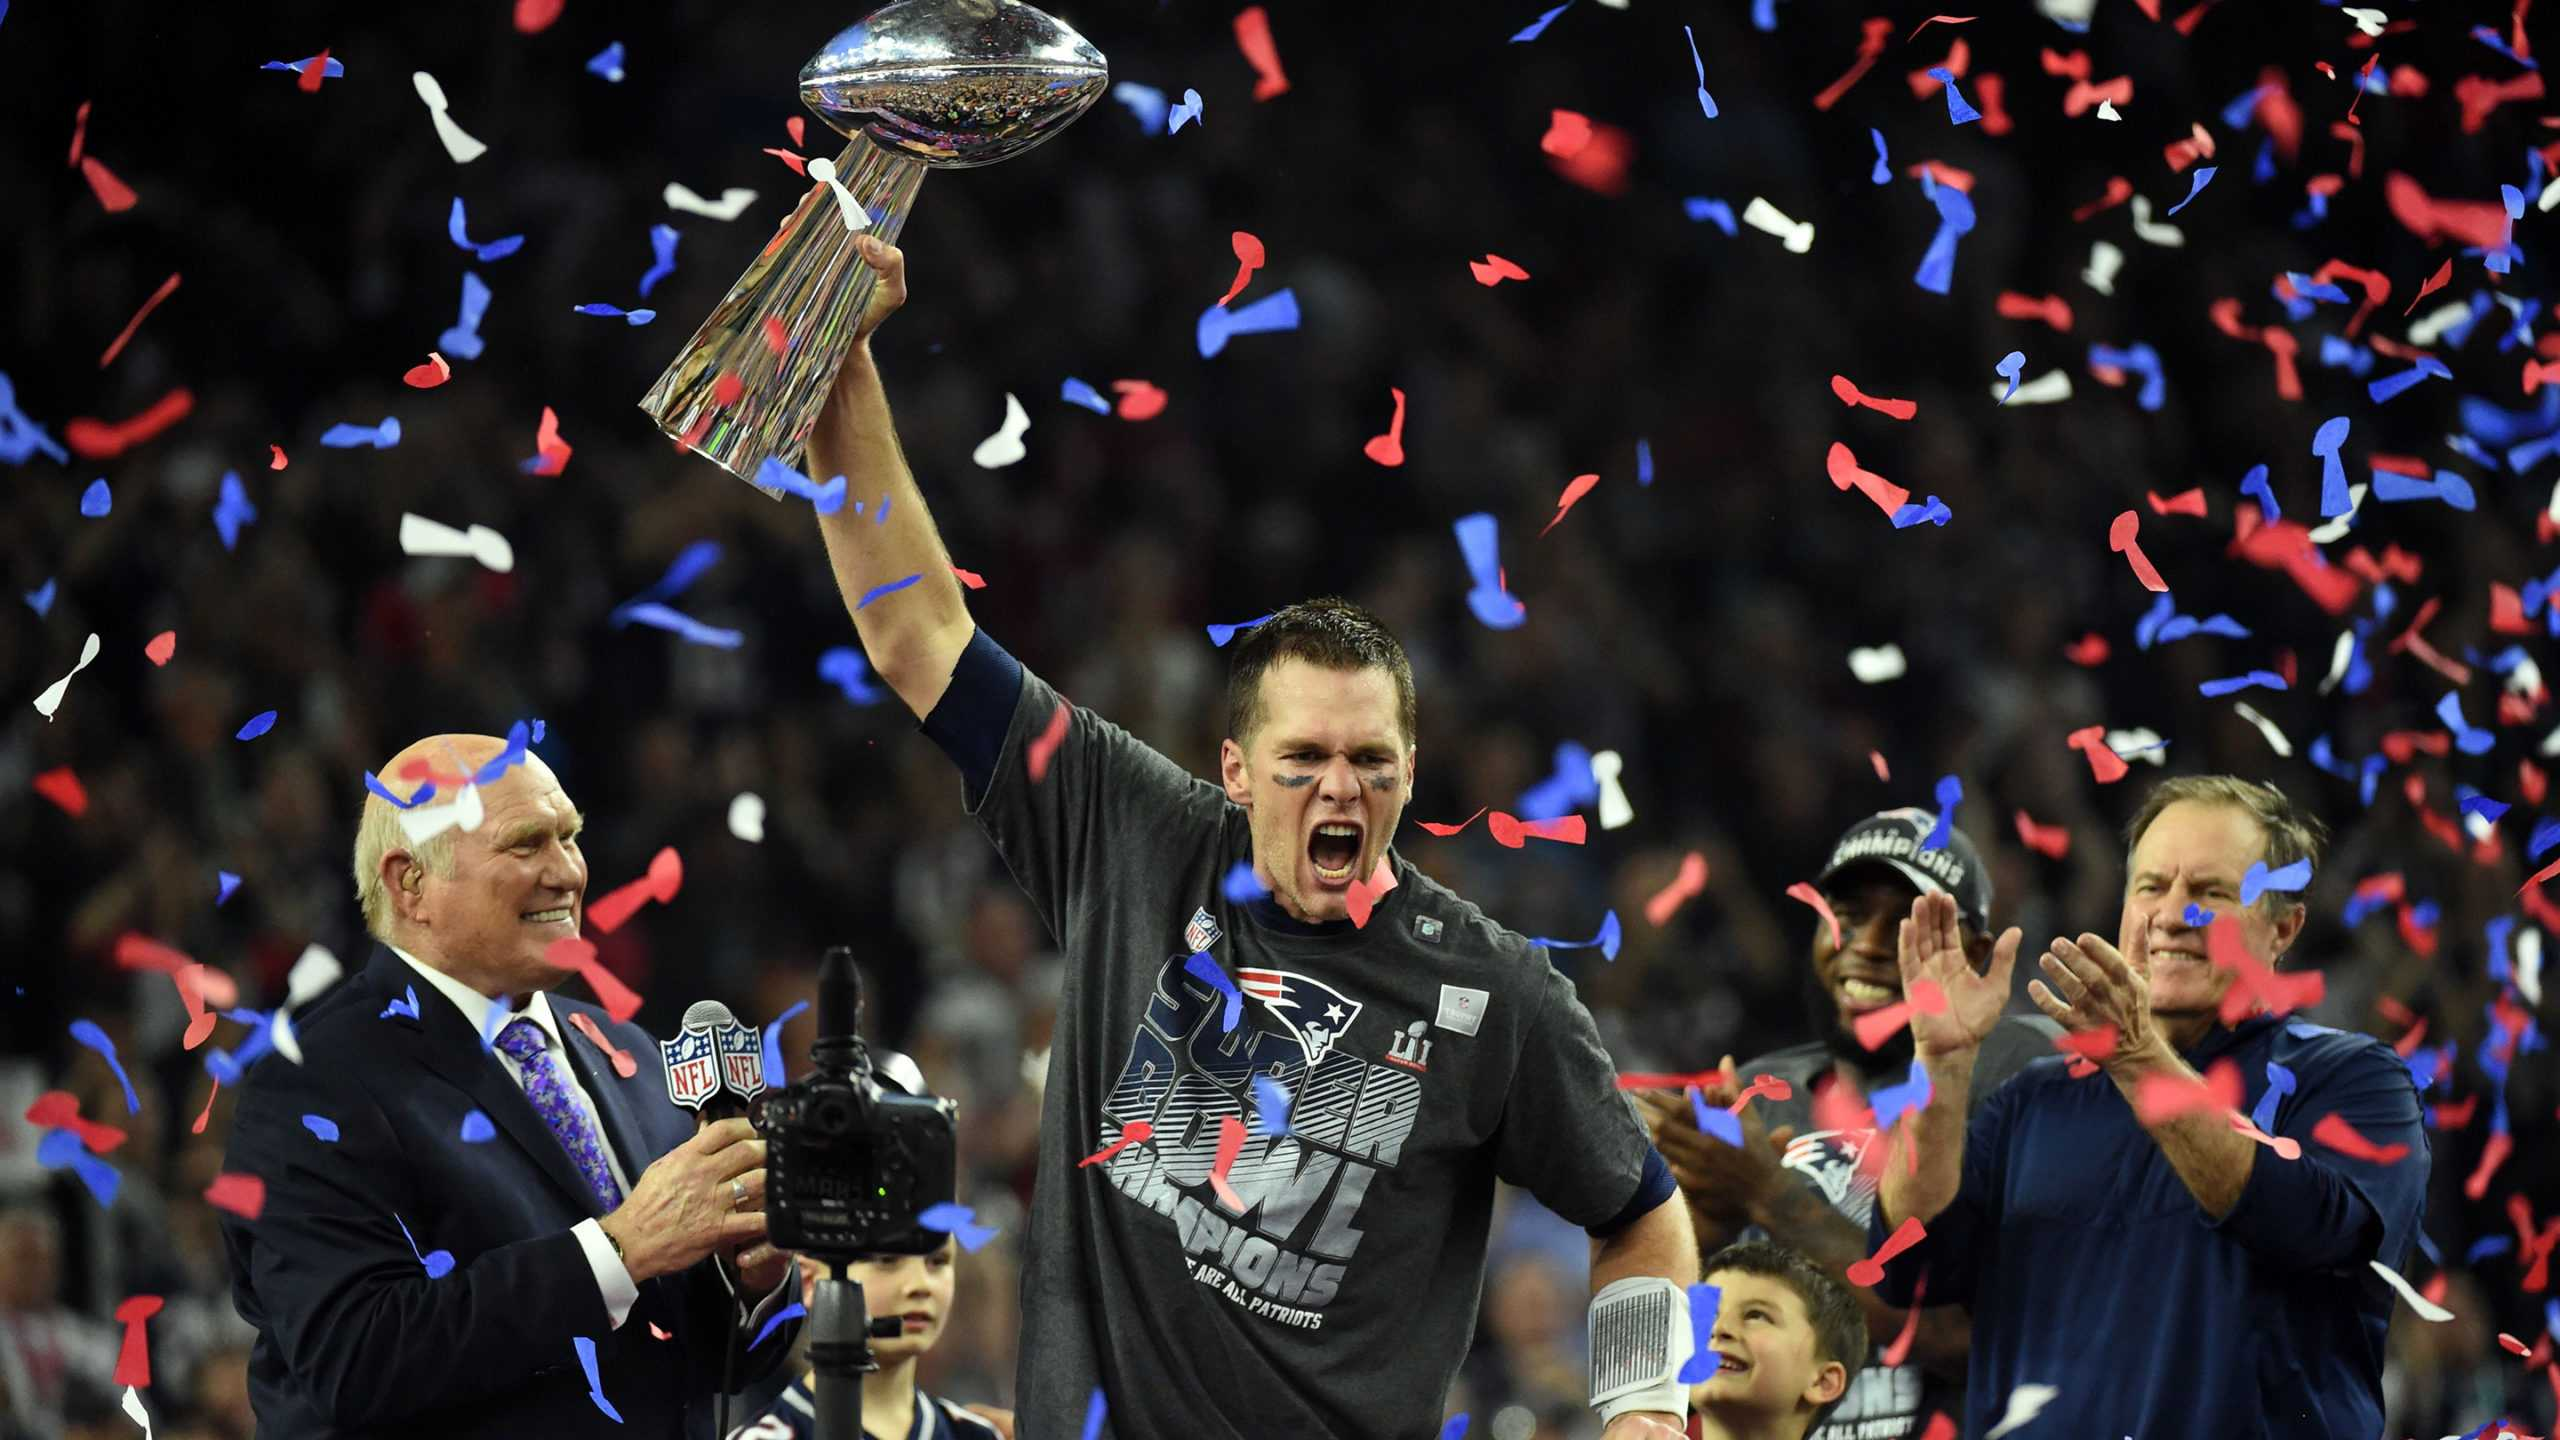 Tom Brady couldn't save New England and we wouldn't see this